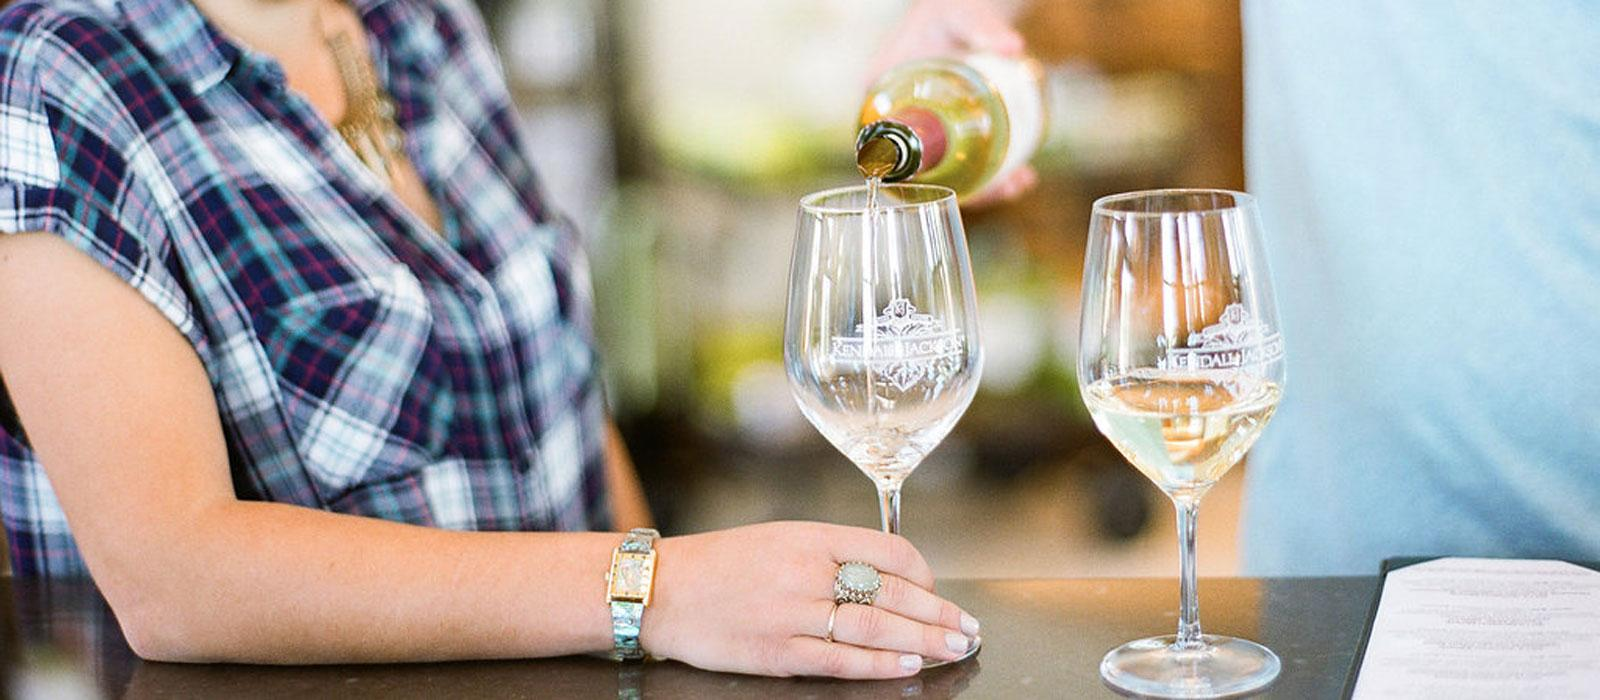 Put your palate to the test with a host of diverse tastings, featuring an assortment of varietals and experiences that truly offers something for everyone.